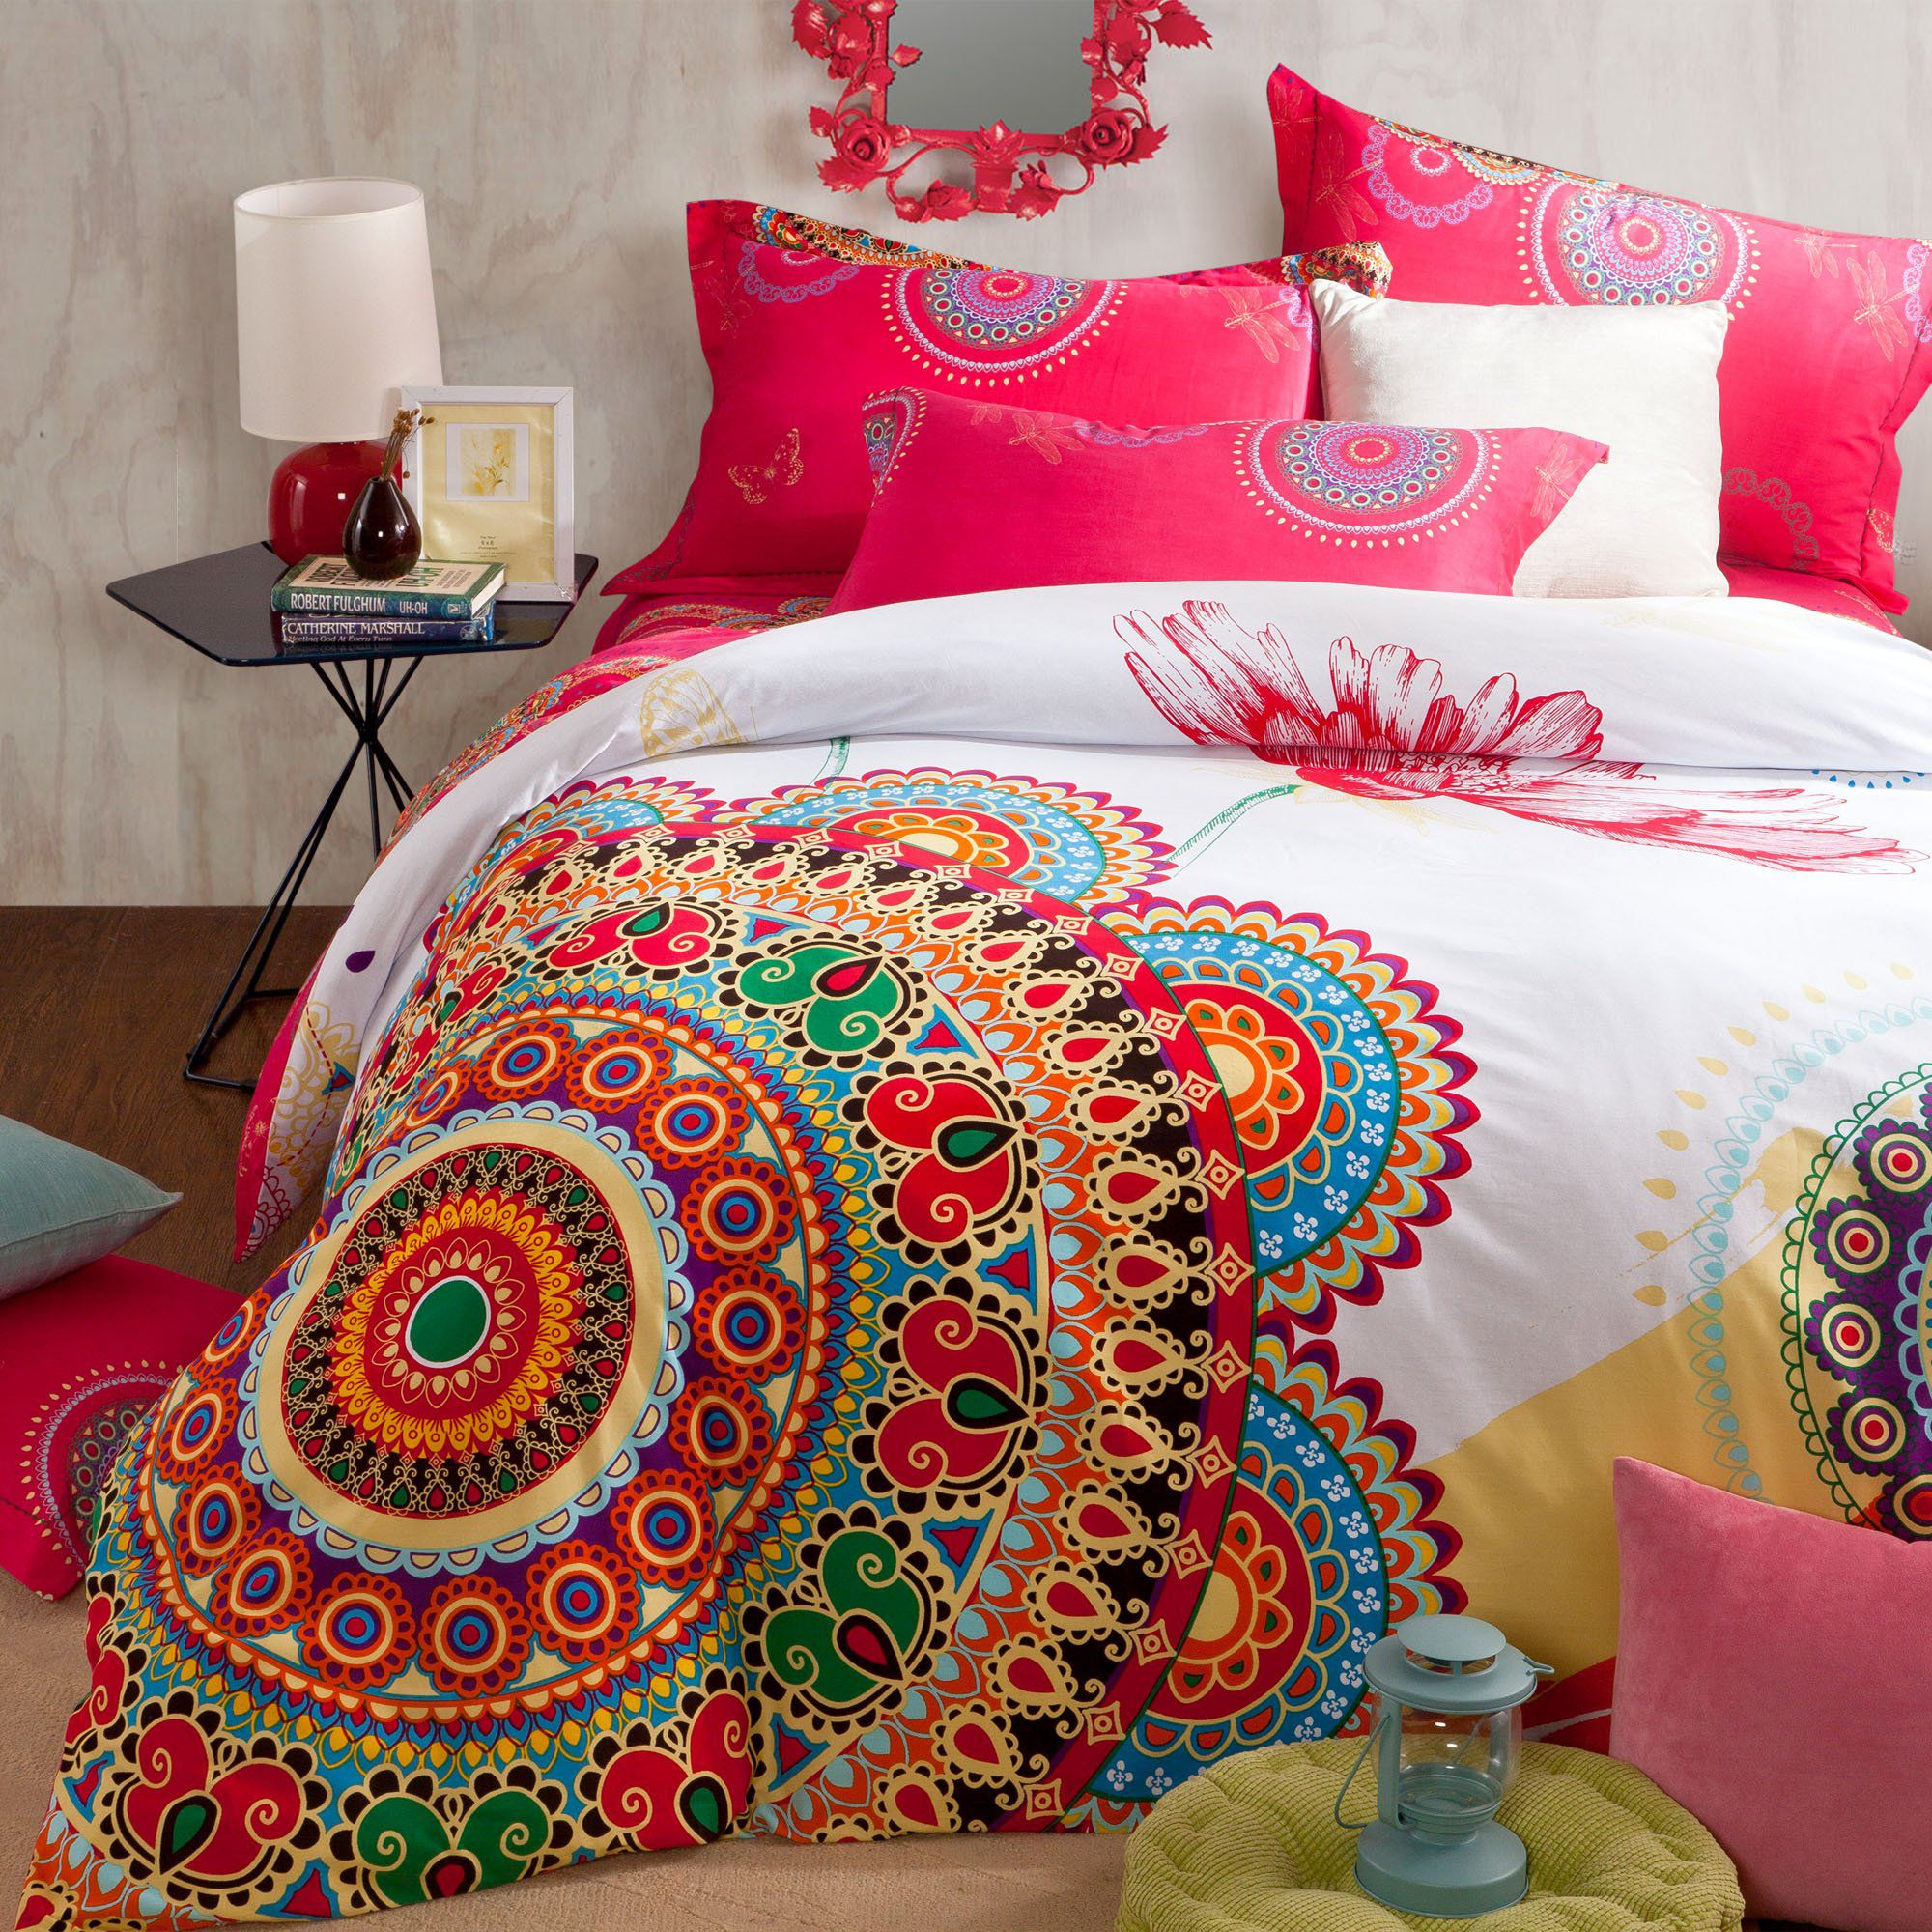 Most Beautifull Deco Paint Complete Bed Set: Bohemian Bedroom Decorating Ideas